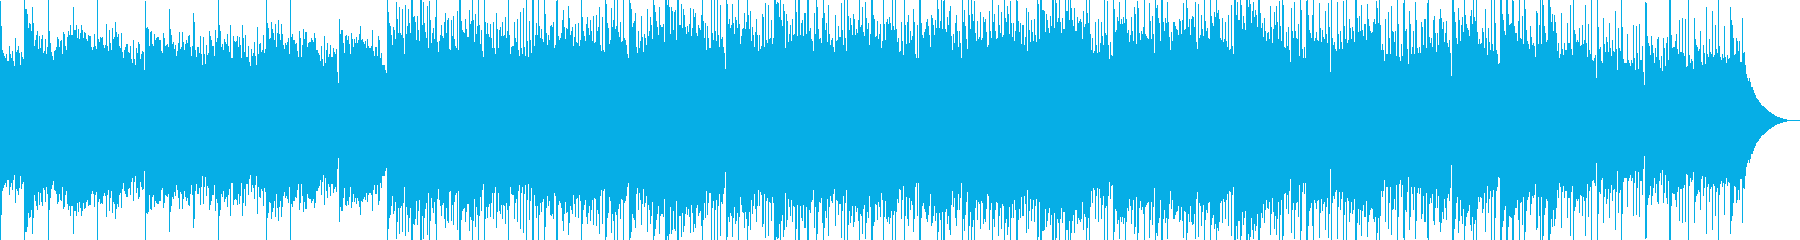 Acoustic Corporate's reproduced waveform